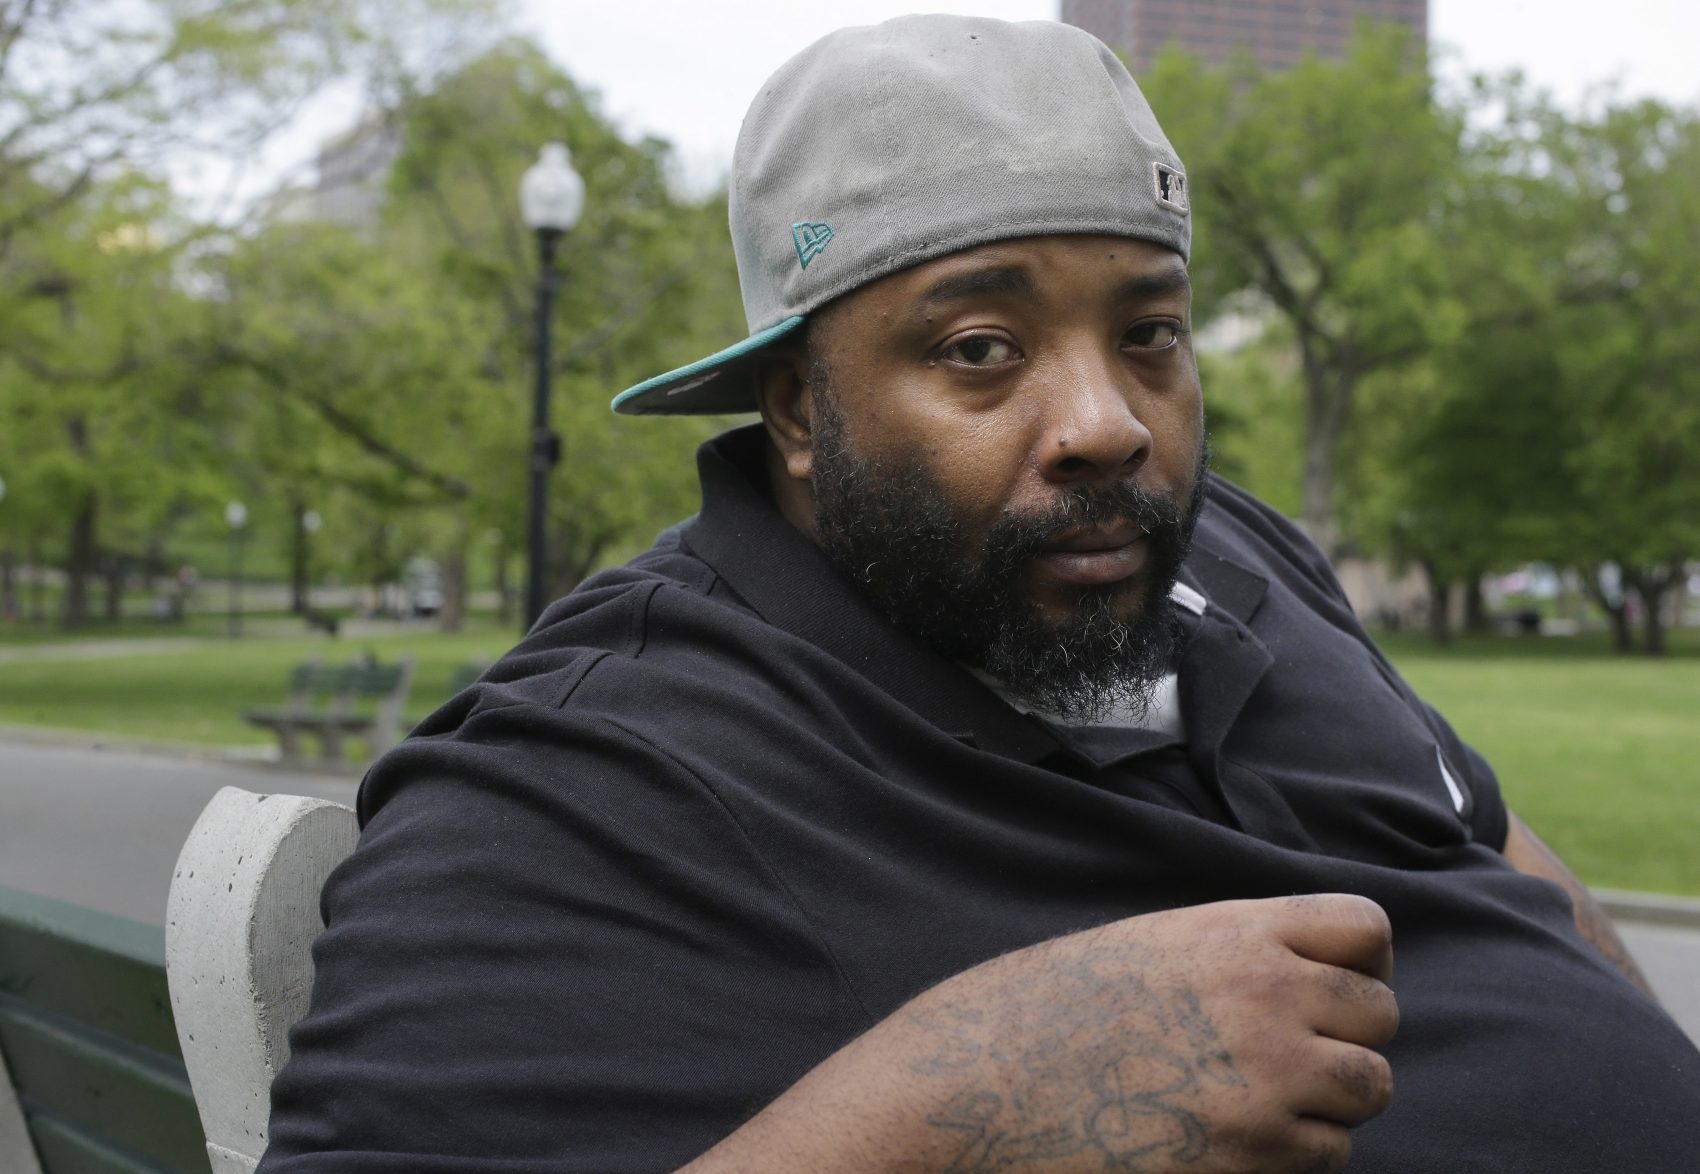 Emory Ellis sits for a photo in a park in Boston. Ellis was arrested in 2015 after he tried to buy breakfast at Burger King using a $10 bill that the cashier thought was fake. (Steven Senne/AP)